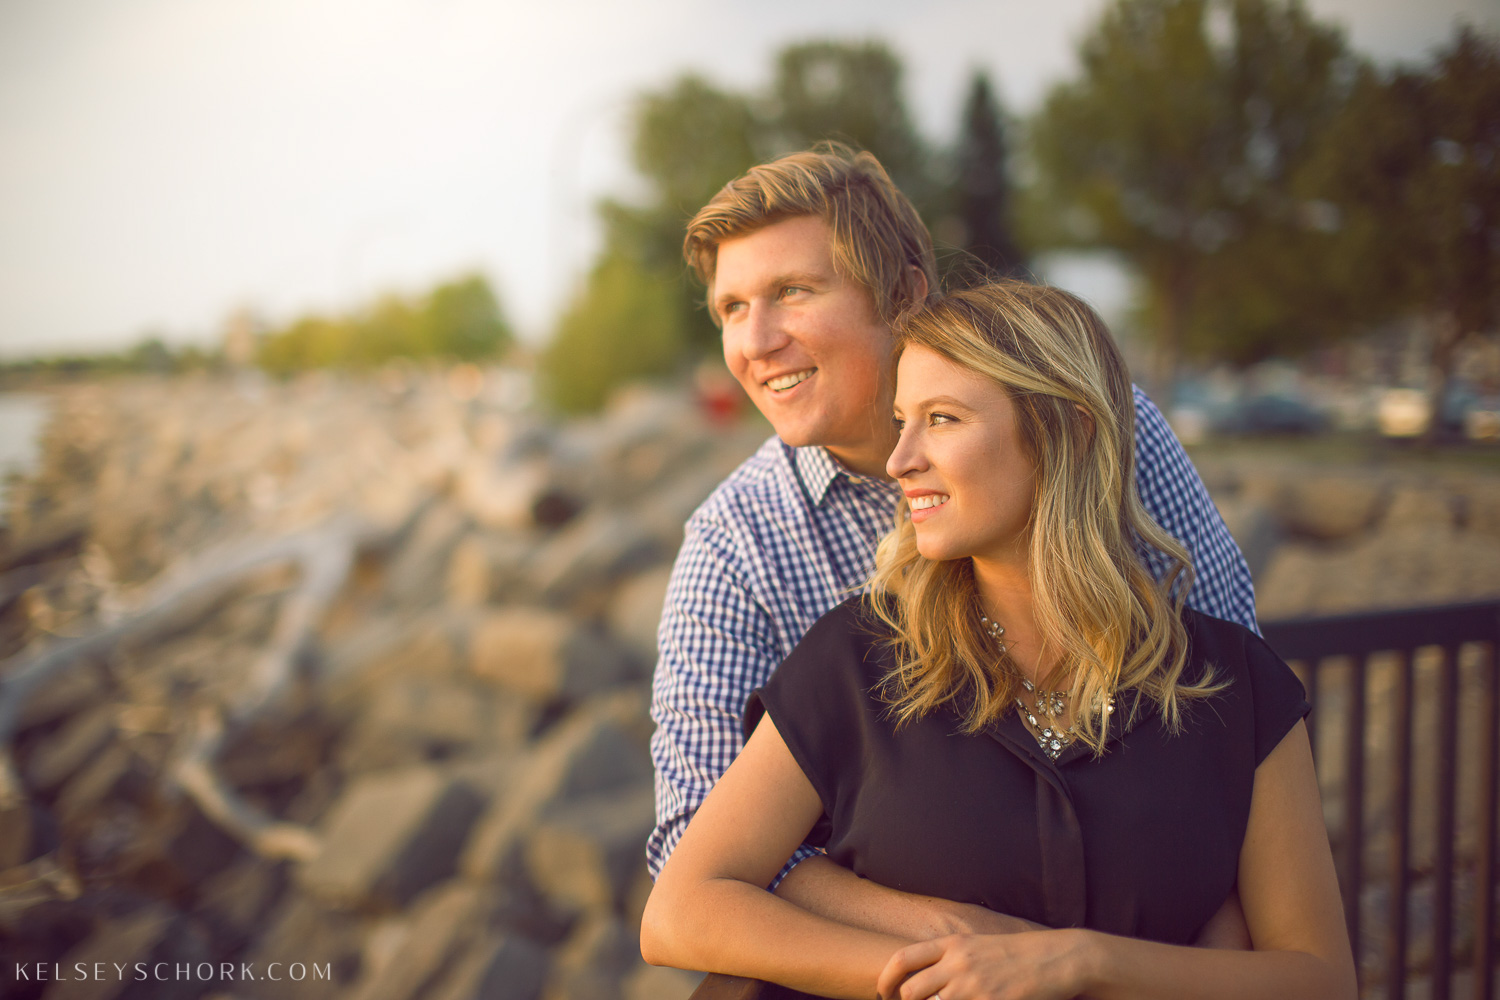 Erie_basin_marina_engagement-10.jpg